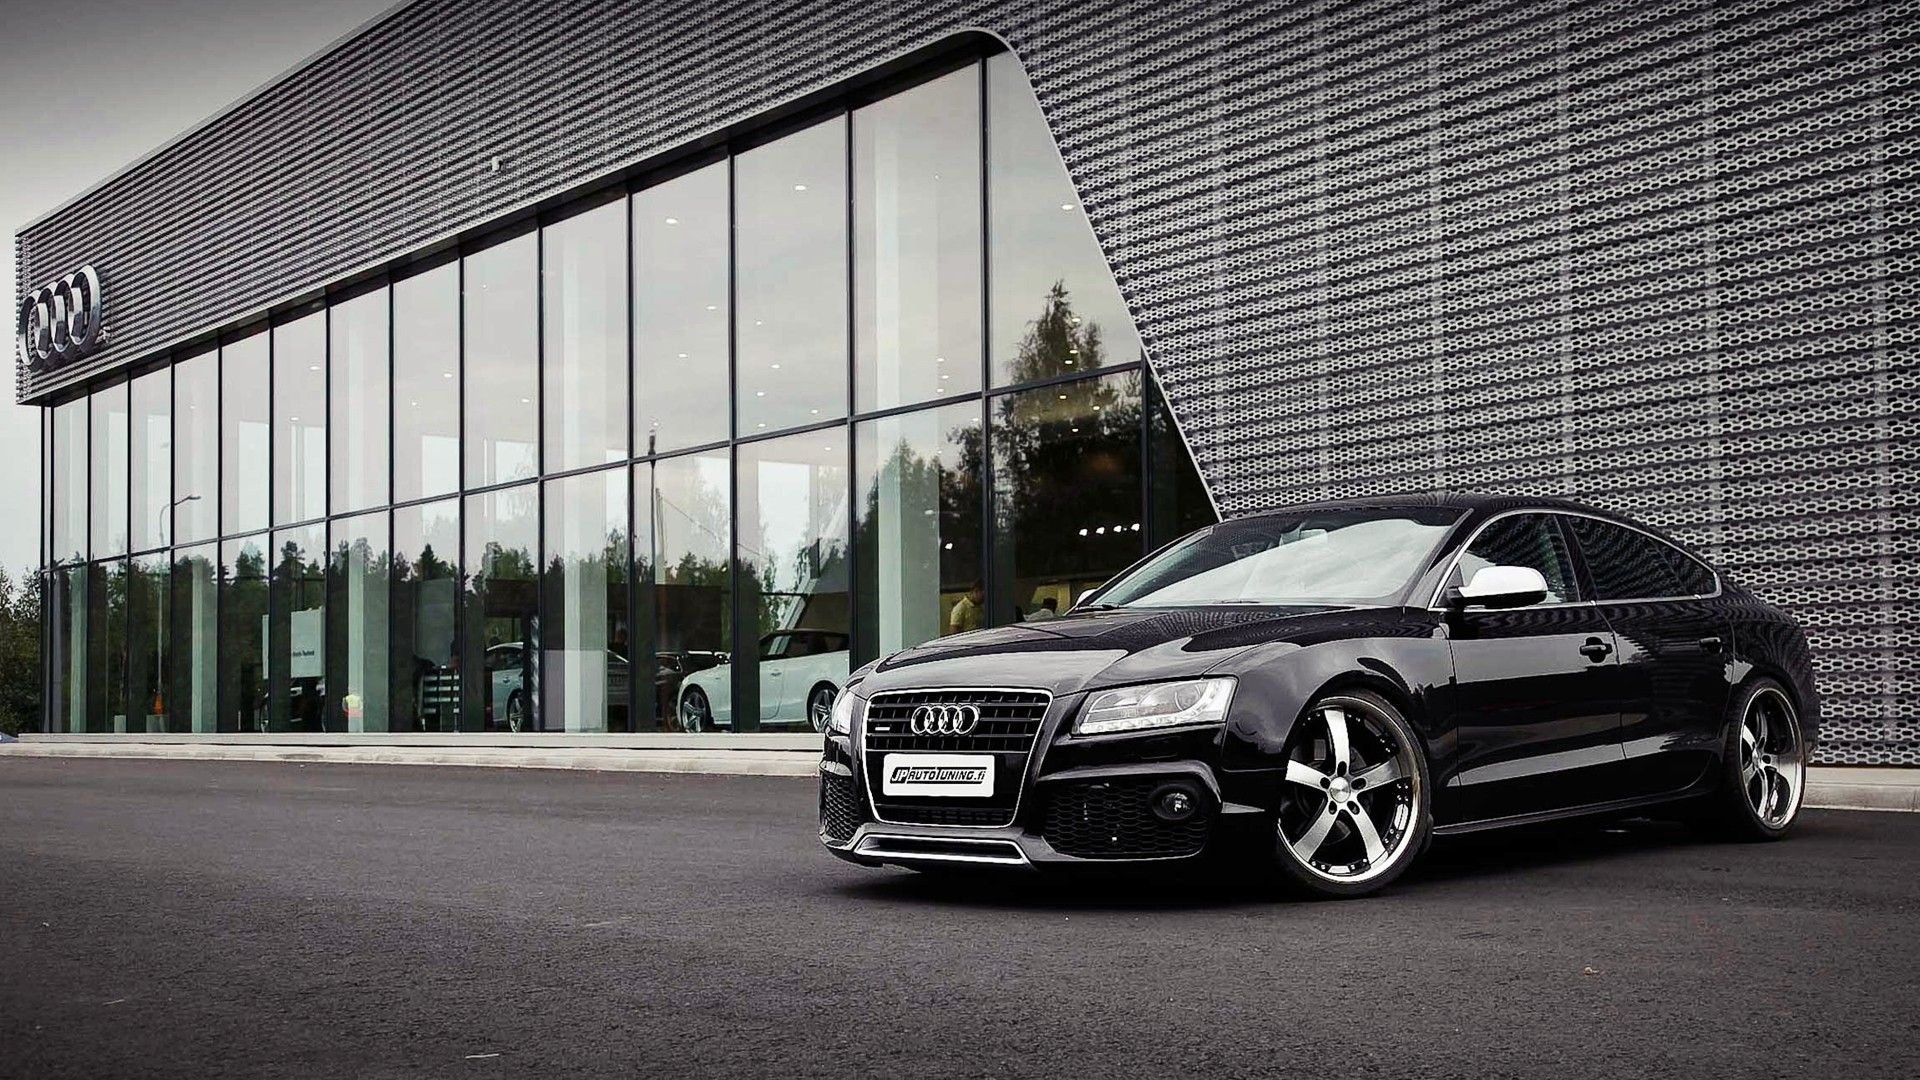 Black Audi Rs5 Hd Wallpaper Audi A5 Audi Black Audi